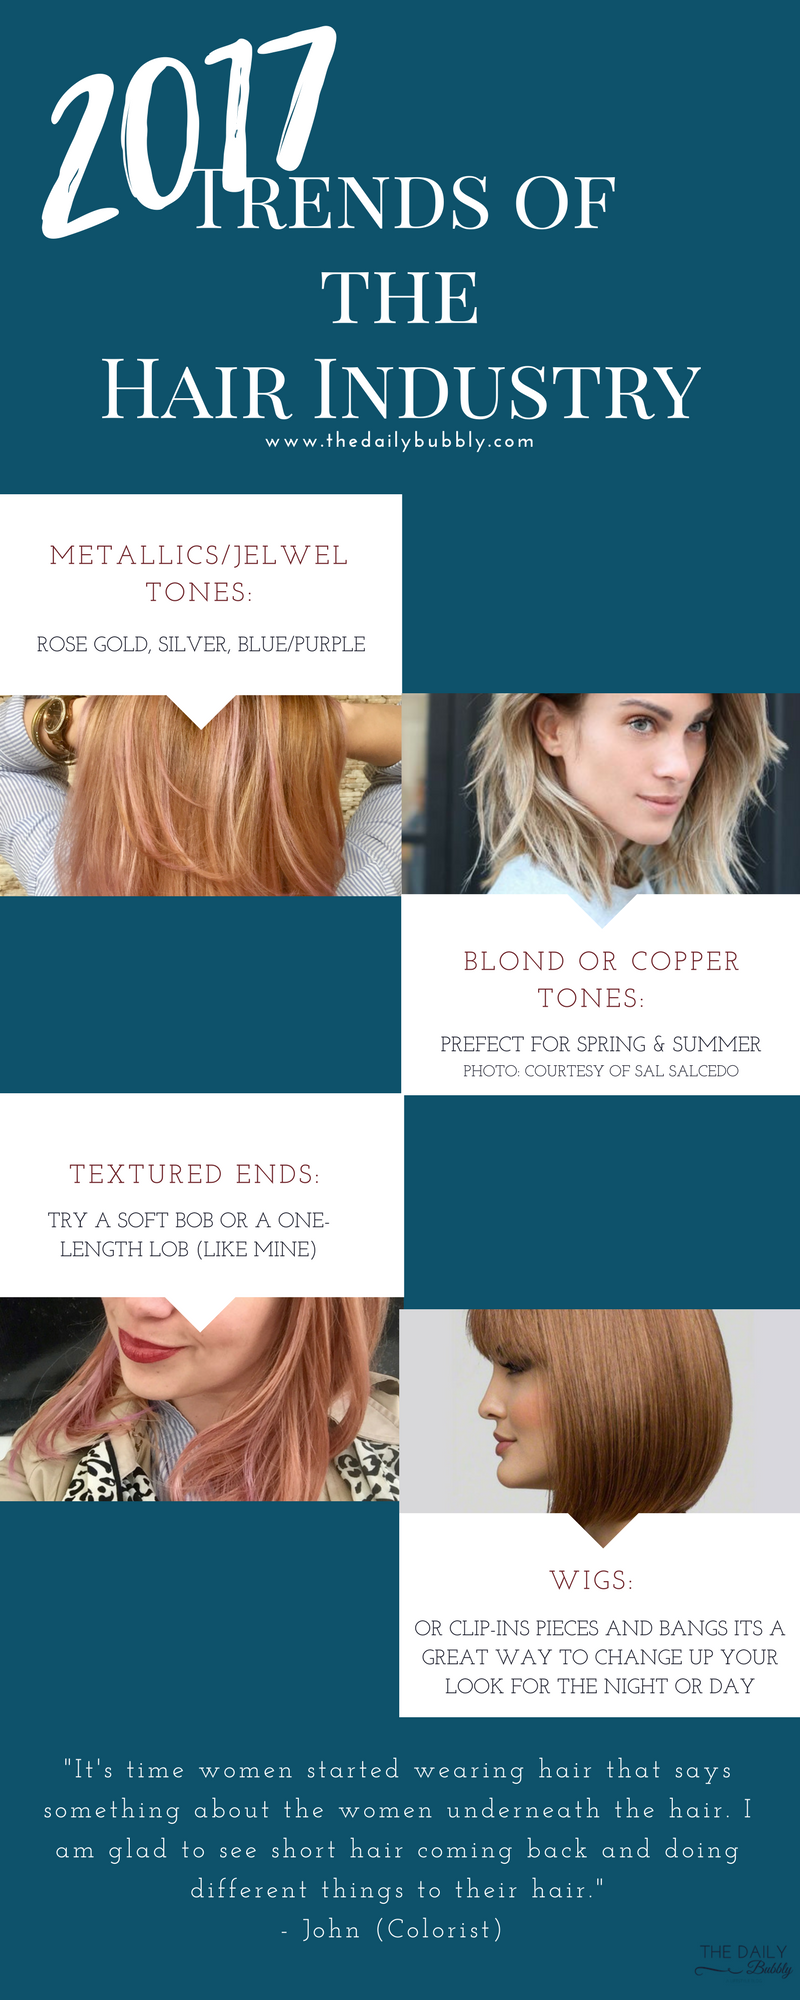 2017 trends for the hair beauty industry.png